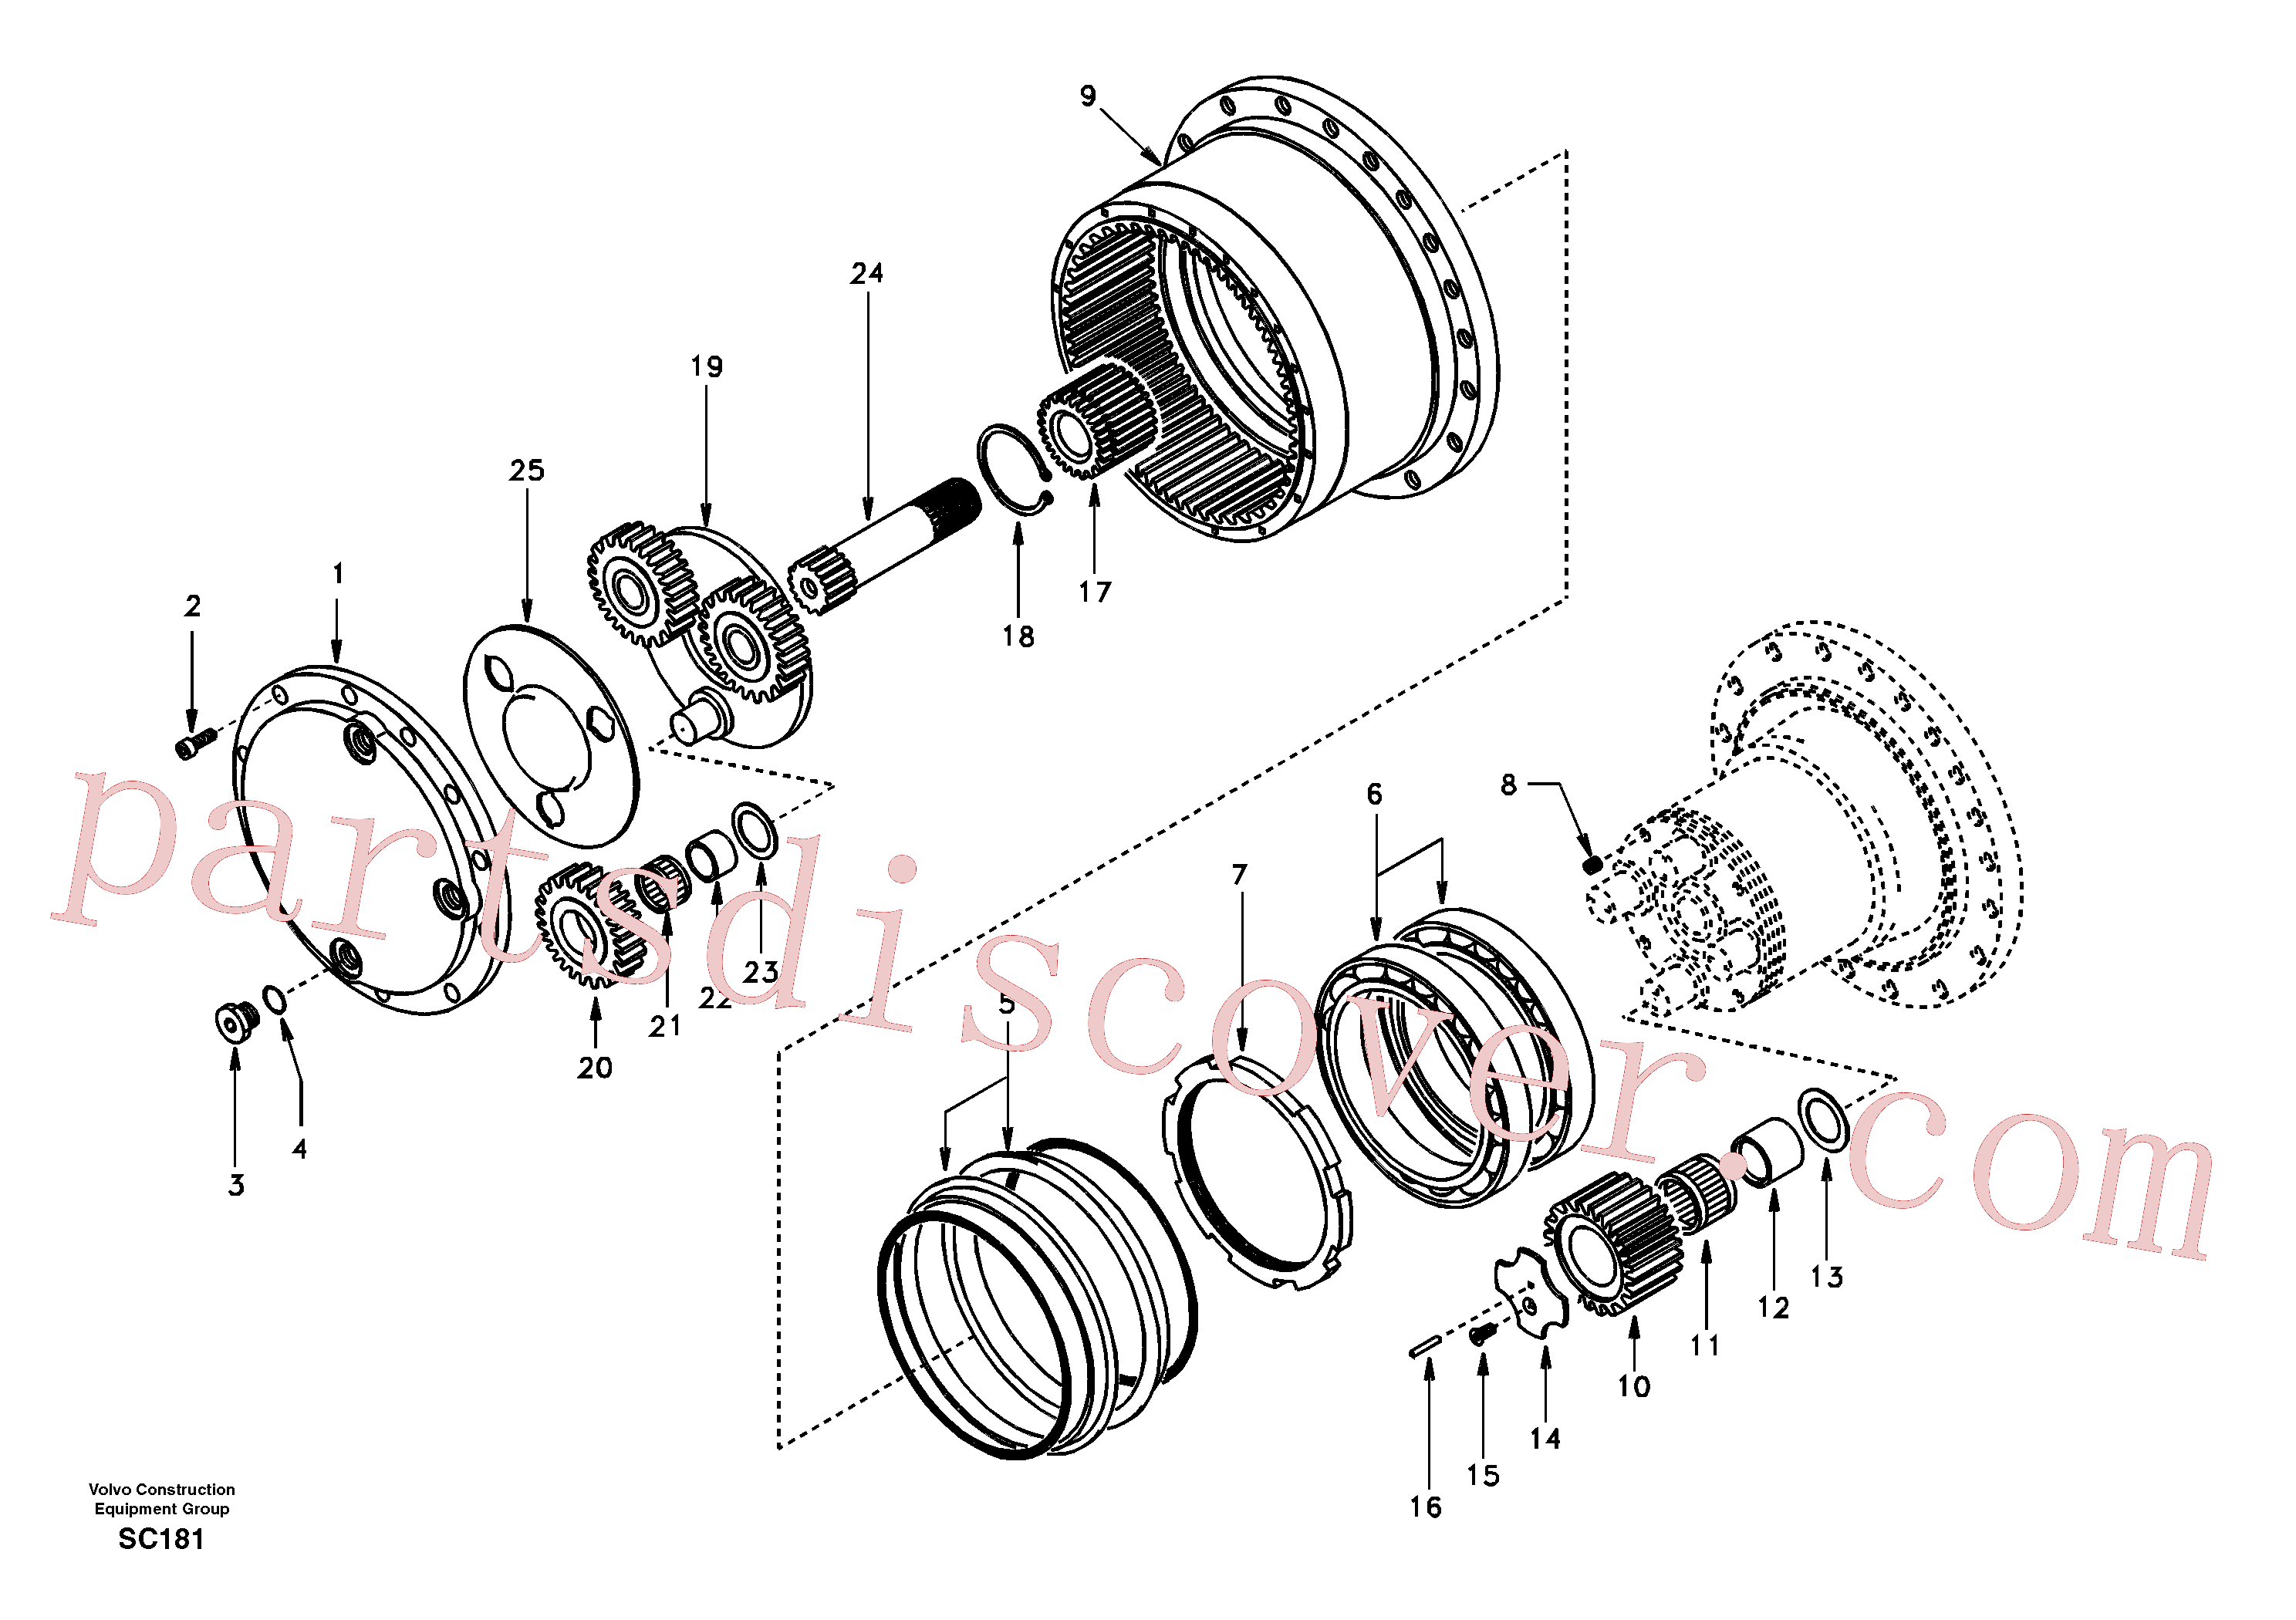 SA8230-32490 for Volvo Travel gearbox(SC181 assembly)